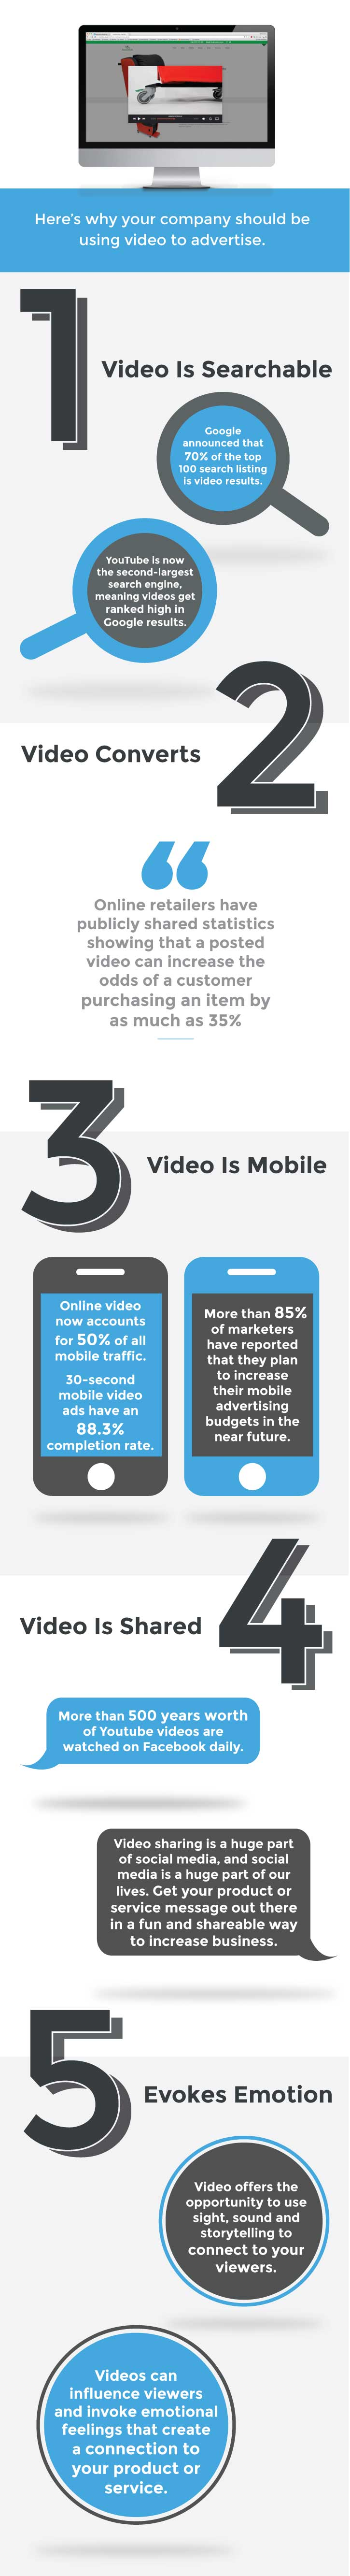 Benefits-of-Video-Advertisingweb